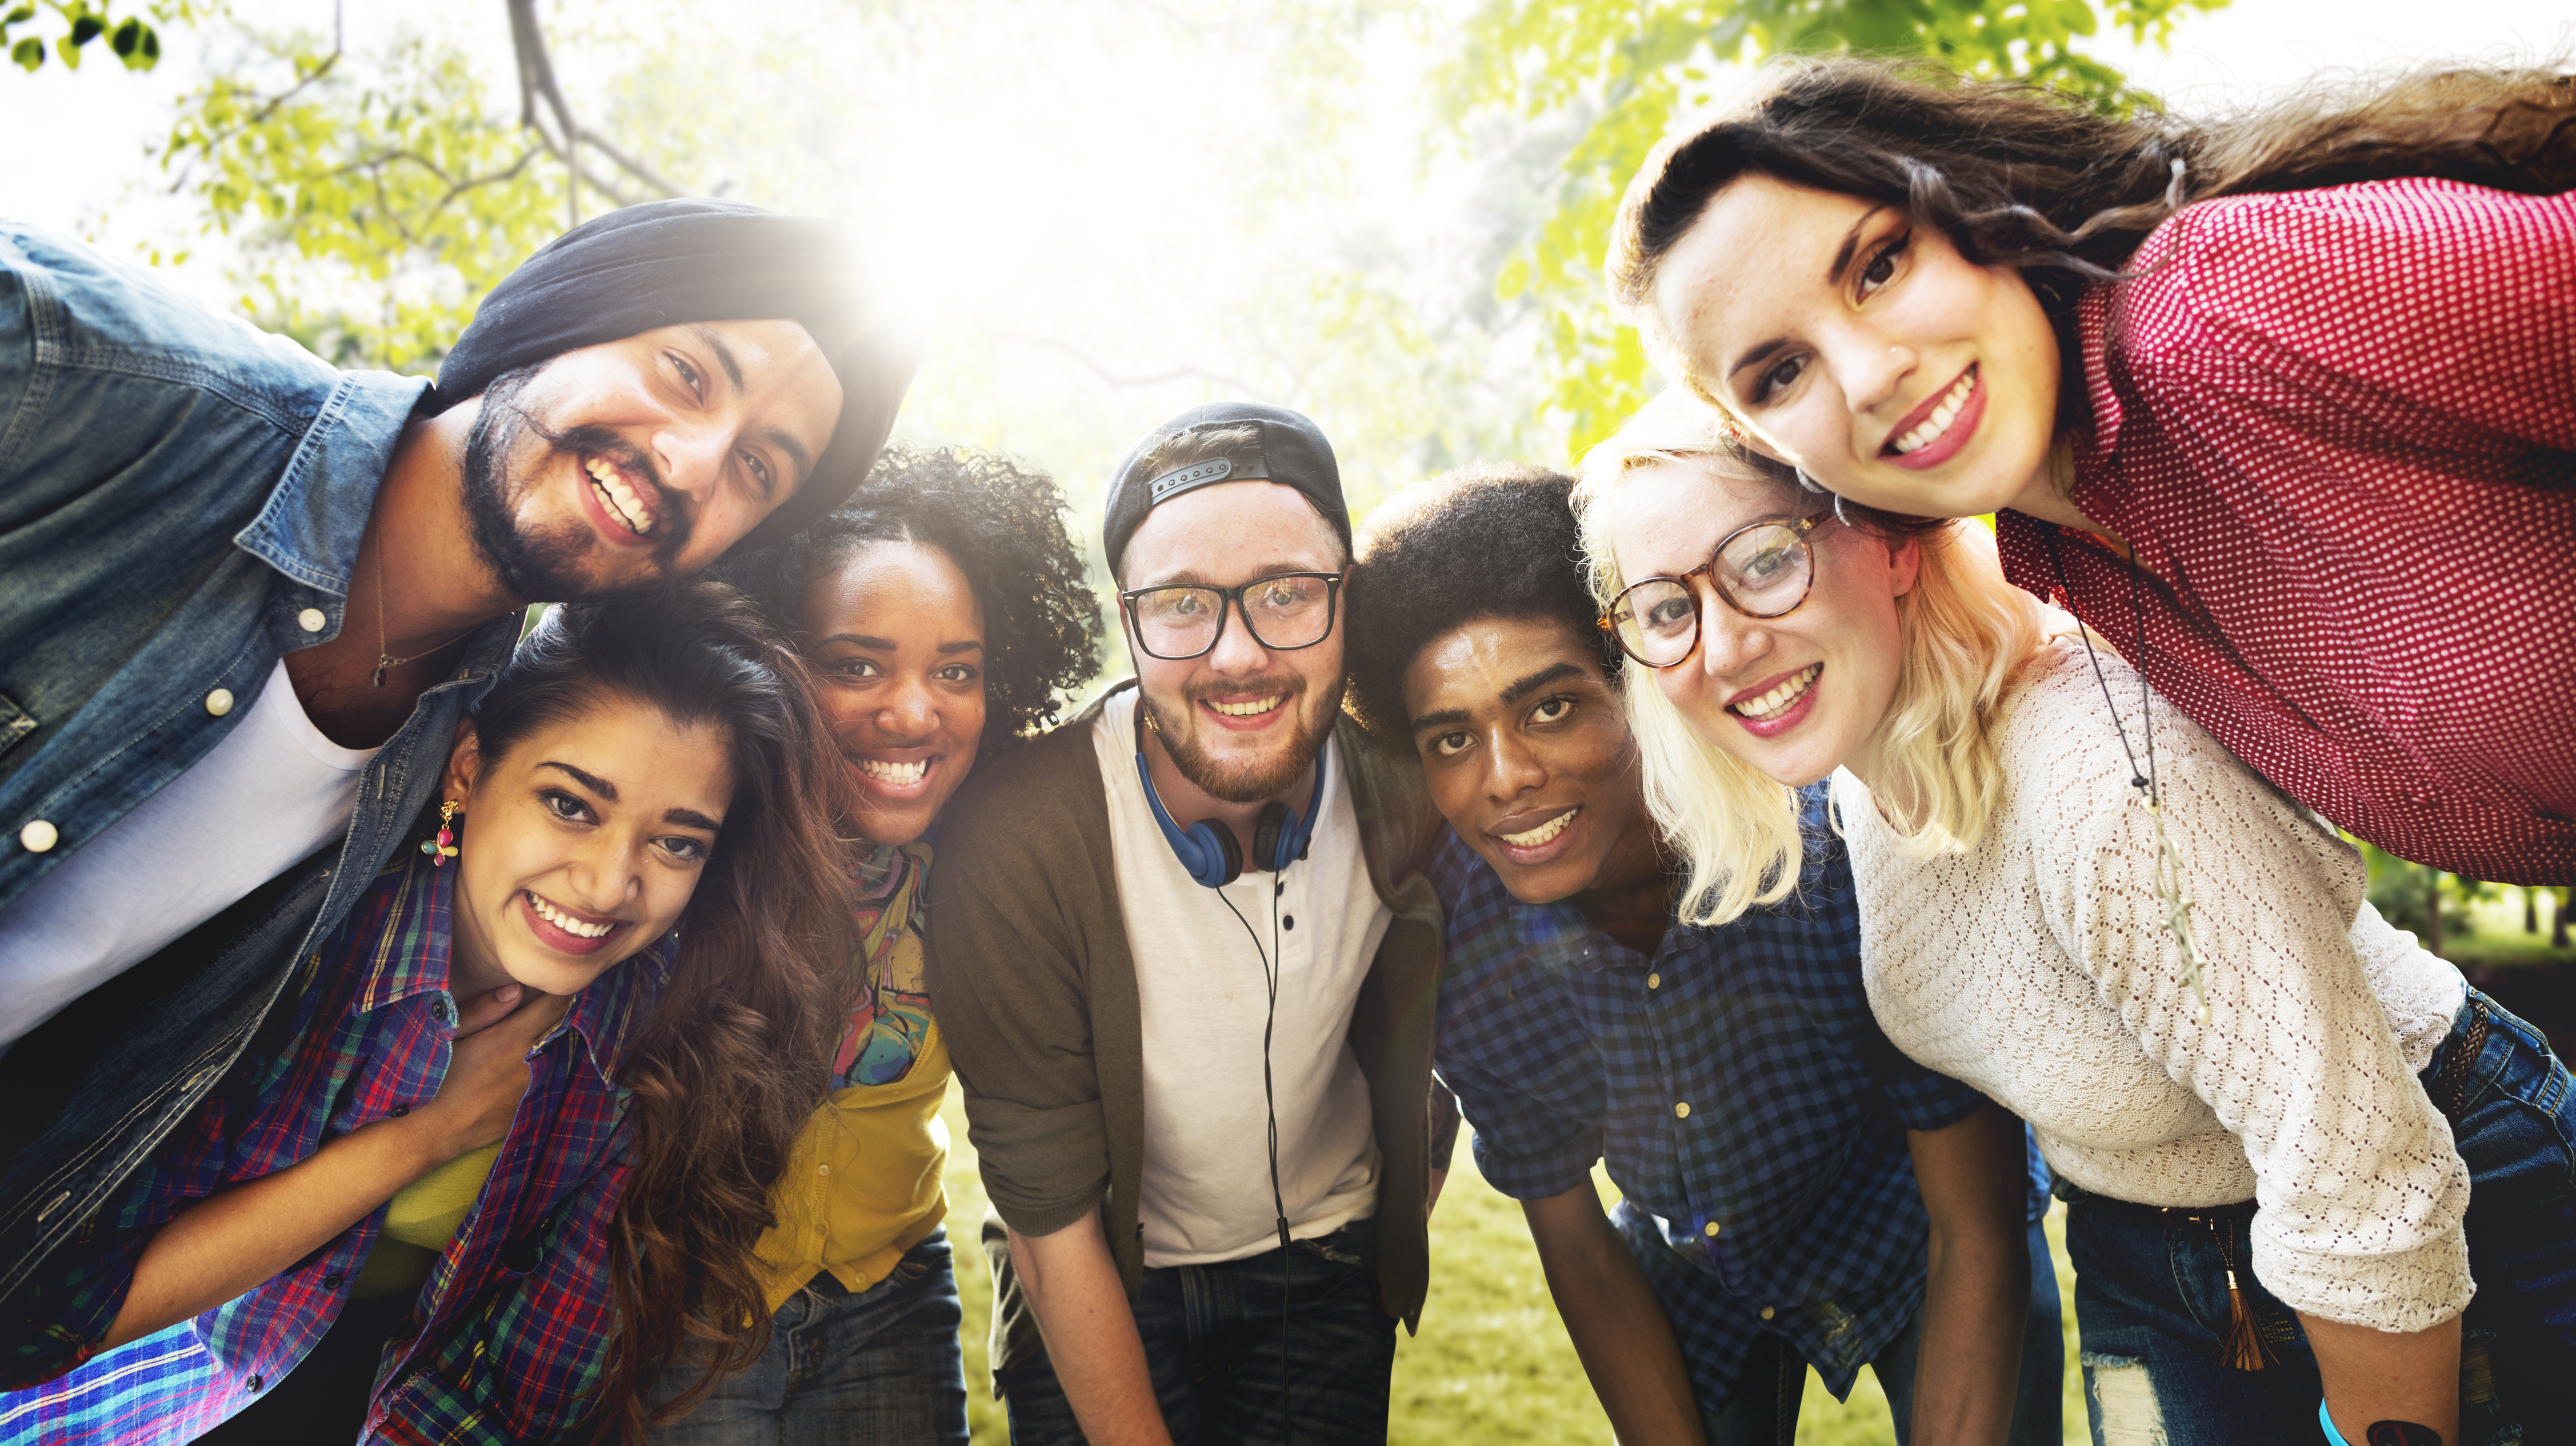 Consult multicultural groups before marketing, says awards ...